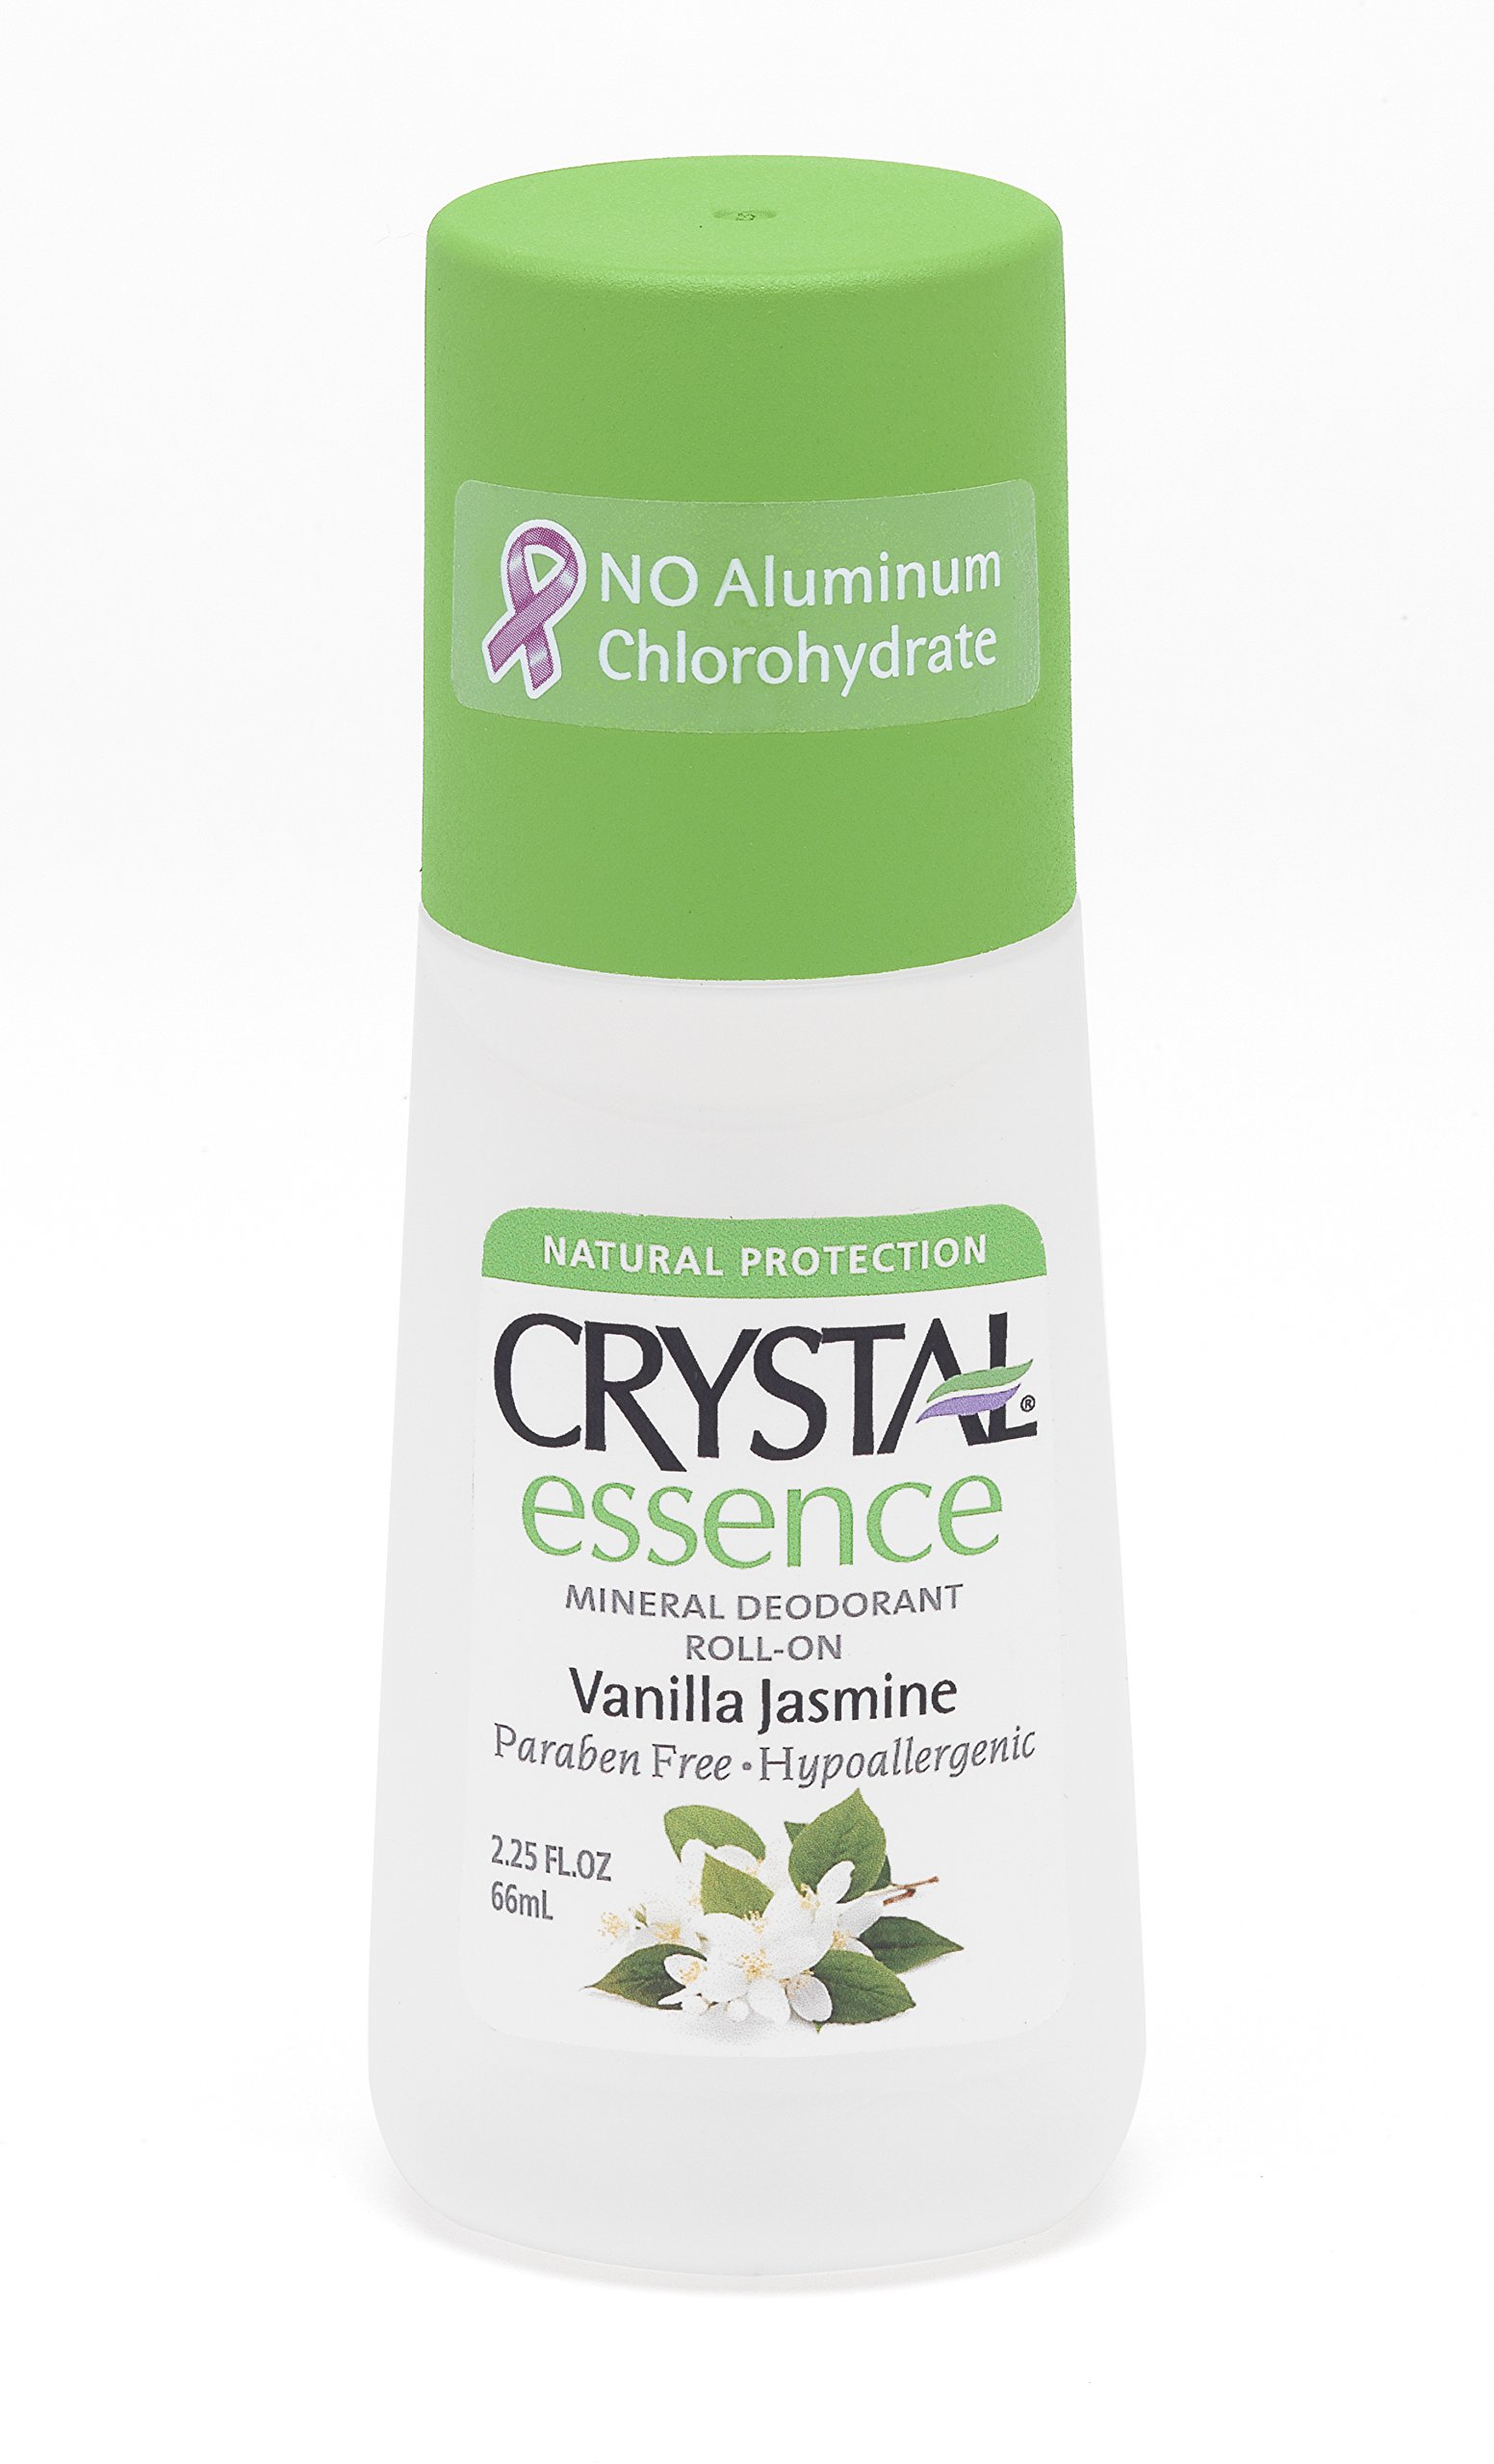 CRYSTAL essence Mineral Deodorant Roll-On - Vanilla Jasmine (2.25 fl oz)